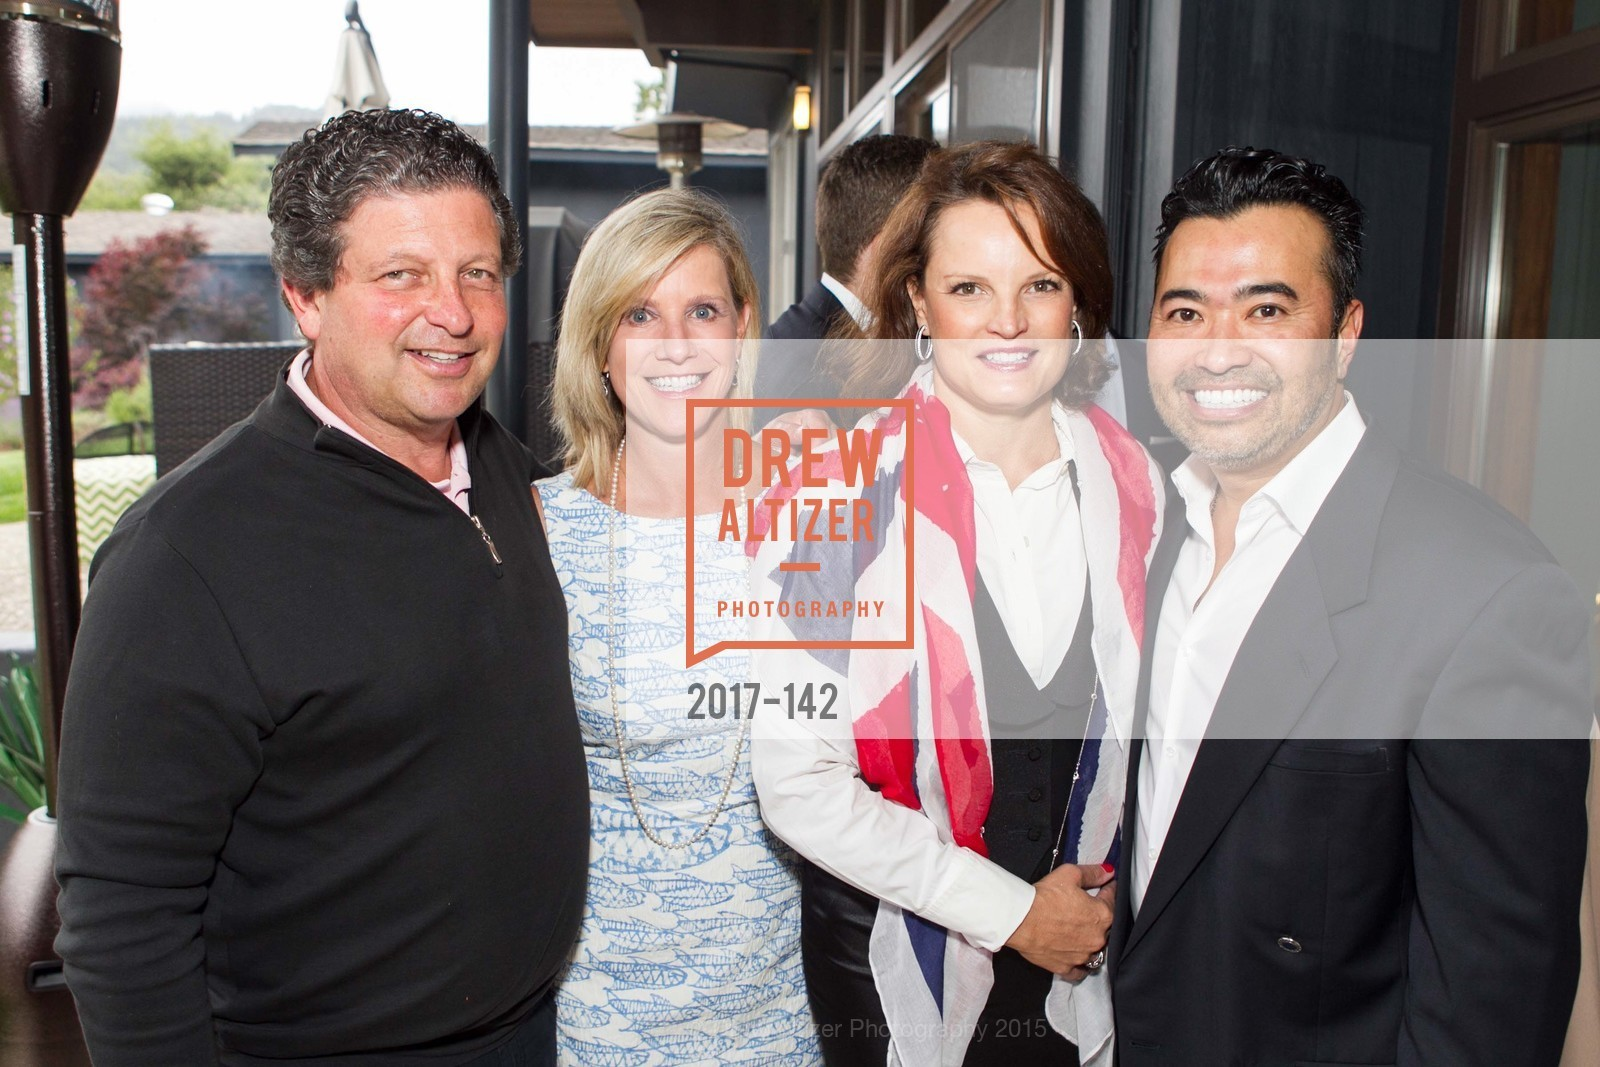 Warren Weiss, Carol Ann Weiss, Kelly Tejada, Willie Tejada, THE MAN WITHIN book launch with Randolph Churchill, Private Residence, June 2nd, 2015,Drew Altizer, Drew Altizer Photography, full-service agency, private events, San Francisco photographer, photographer california